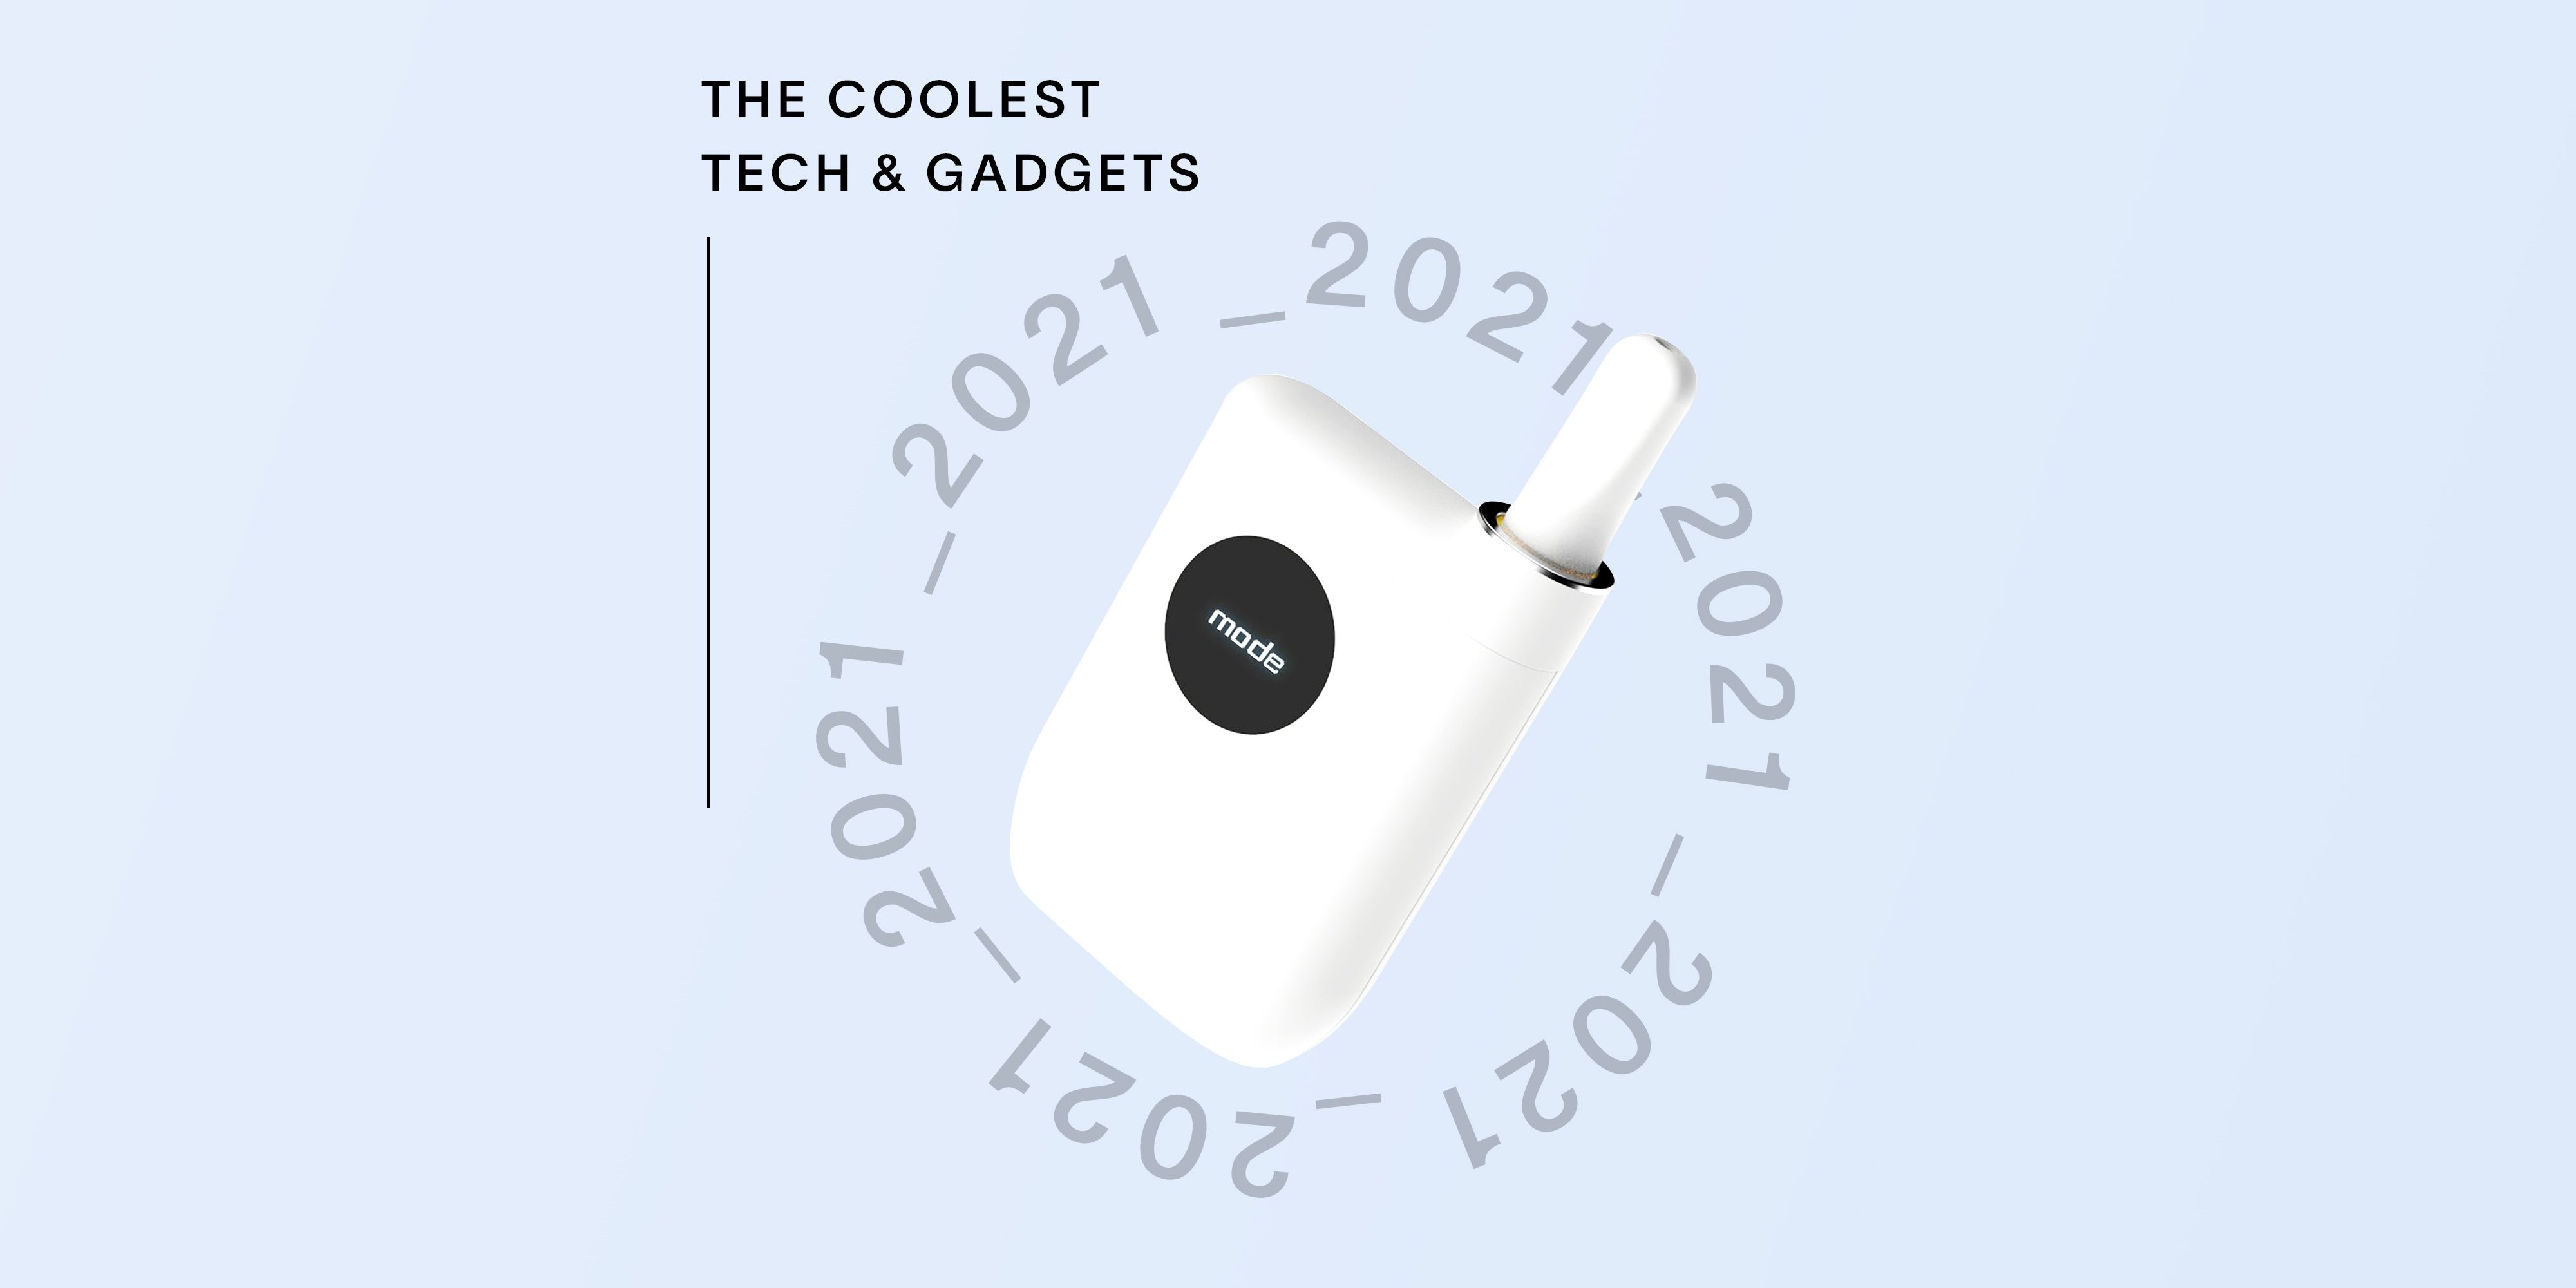 Latest Technology Gadgest For Christmas 2021 15 Coolest Tech And Gadgets 2021 Top Ces Electronics This Year